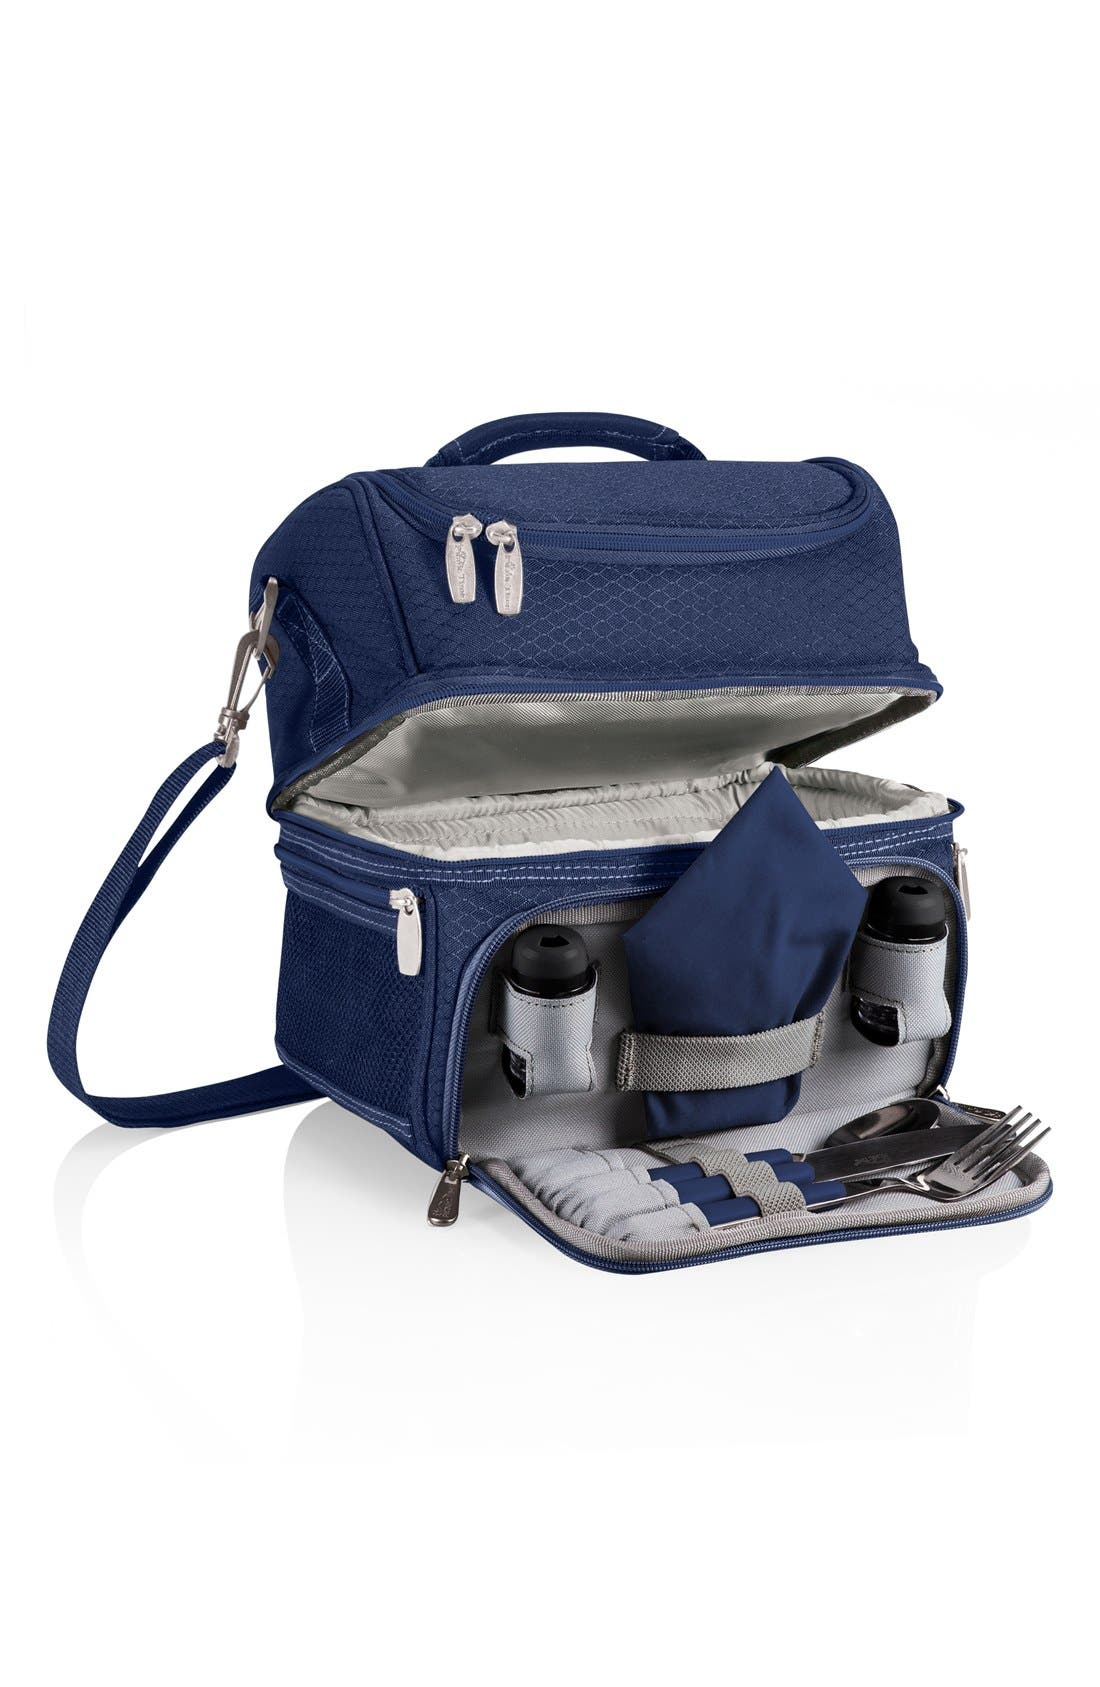 Main Image - Picnic Time Pranzo Insulated Lunch Tote